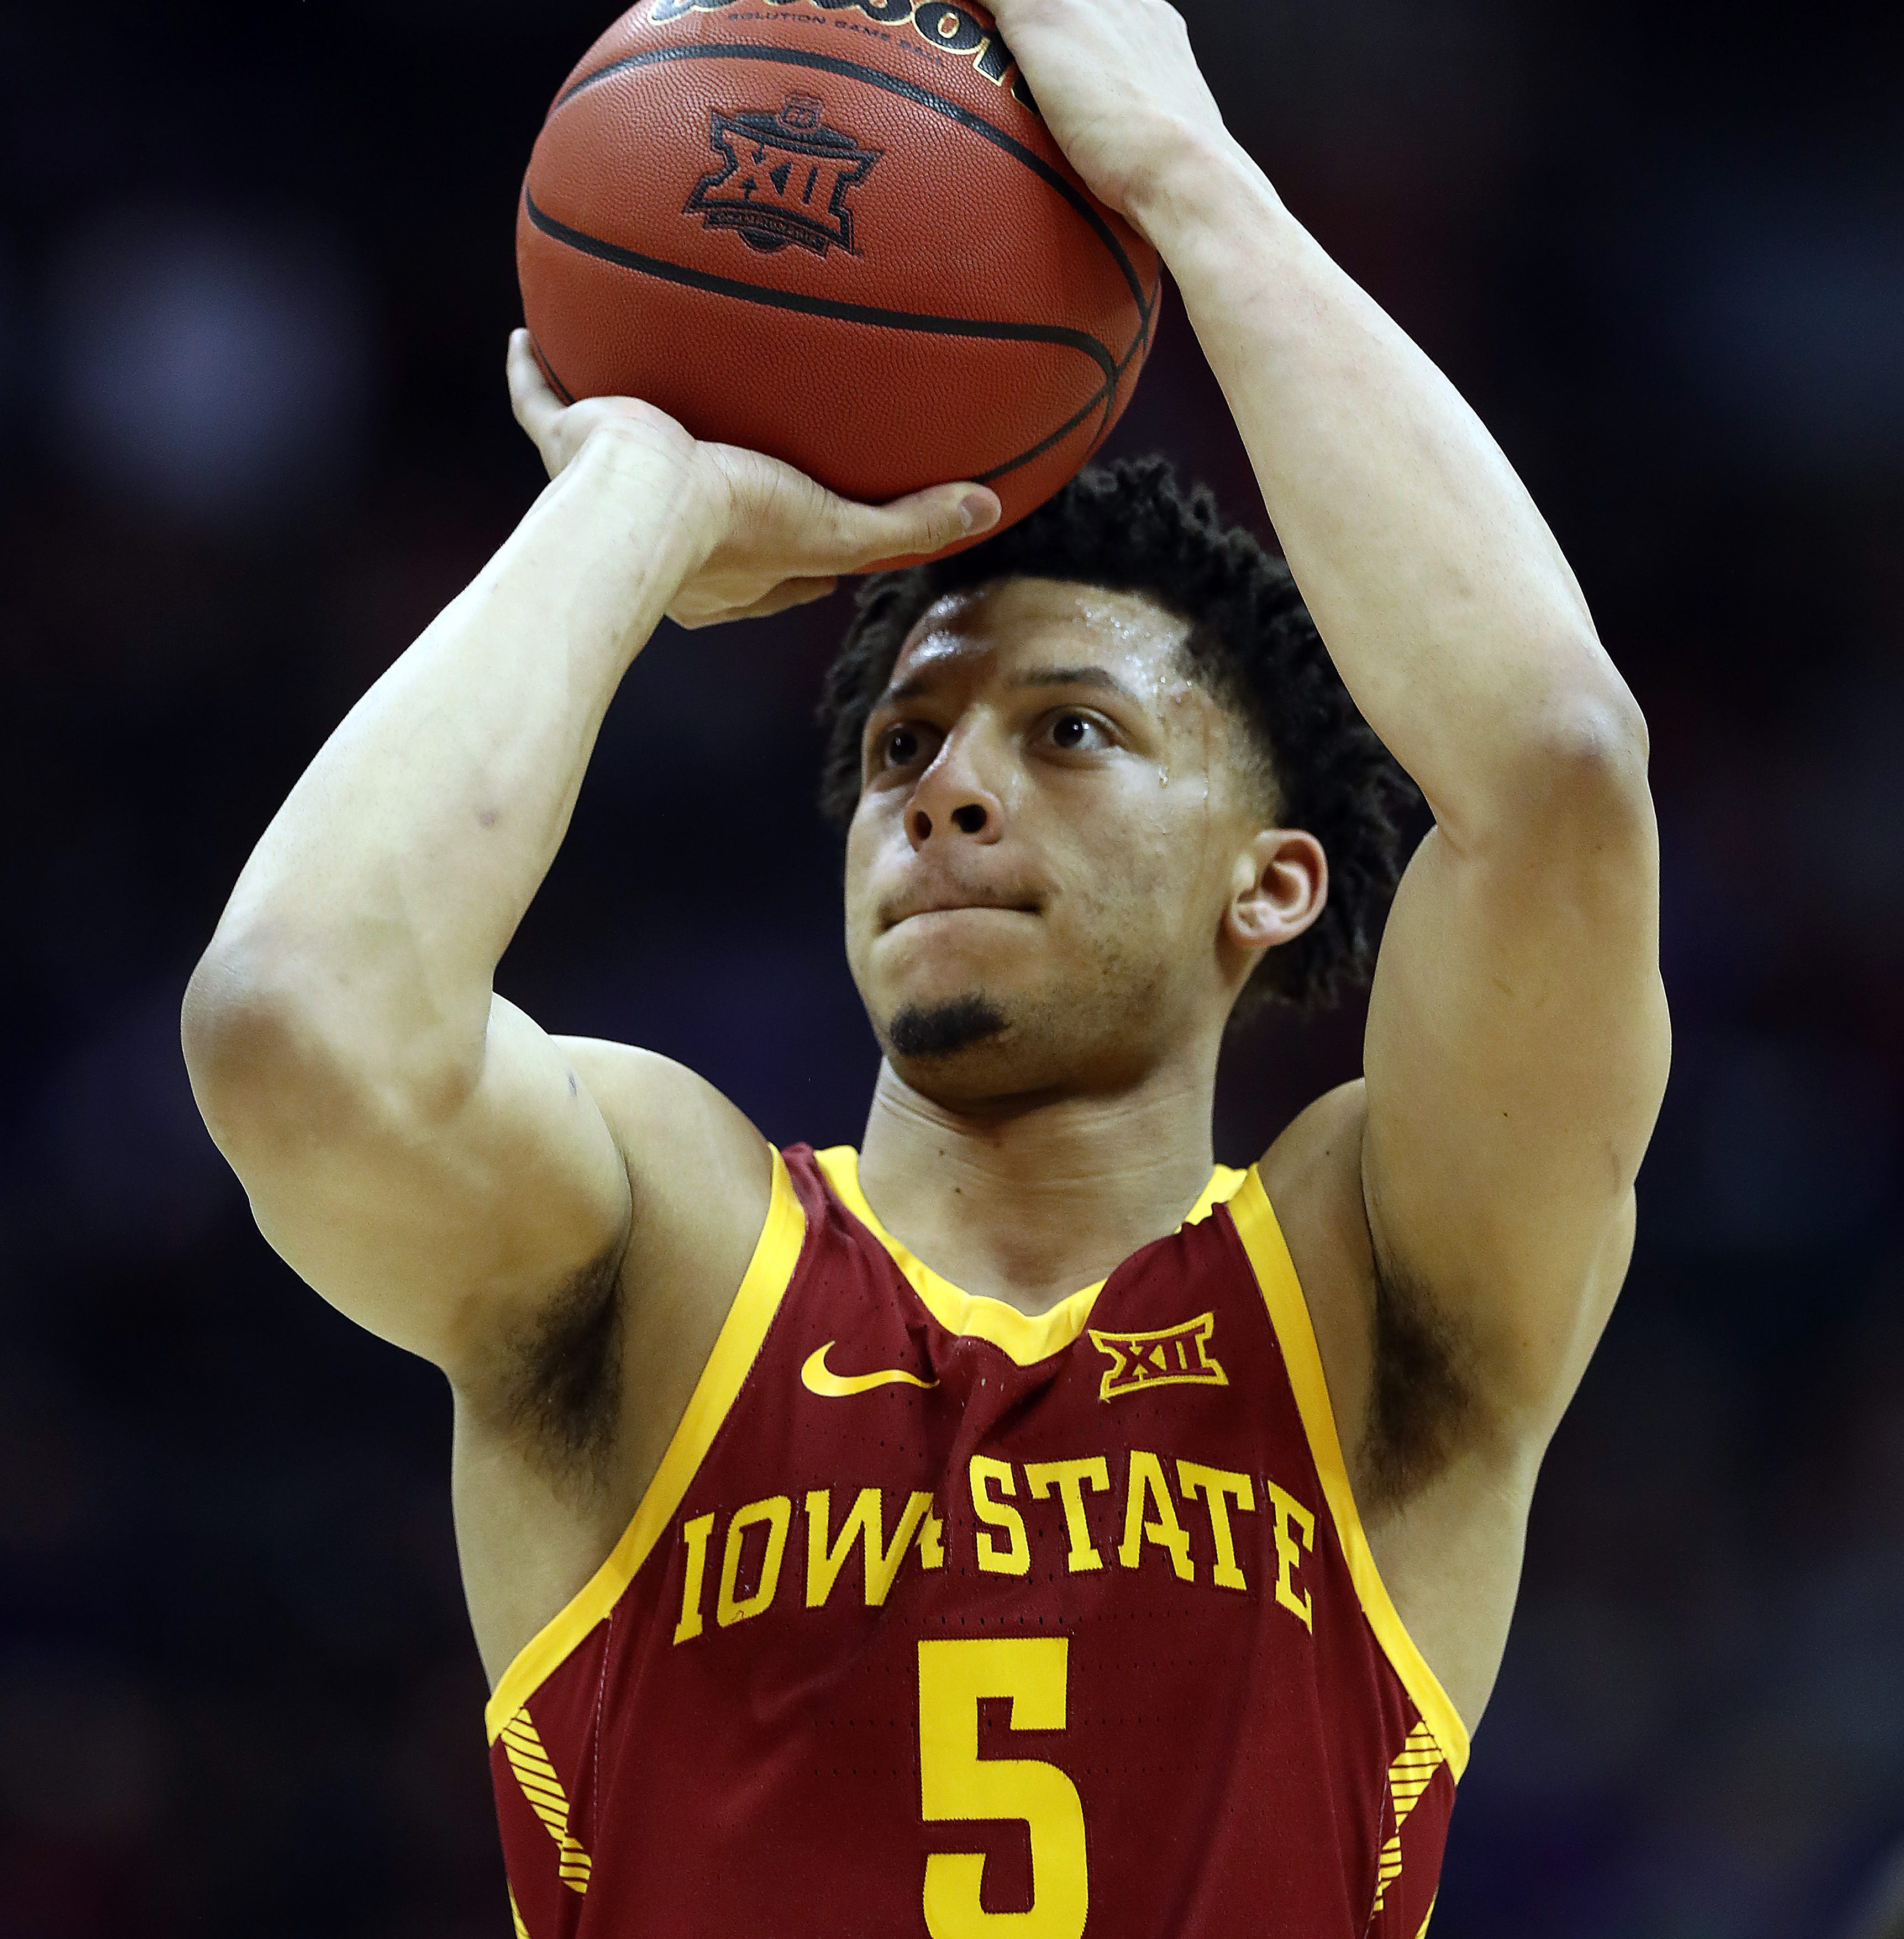 Peterson: No-regret Wigginton says returning for his sophomore season made him mentally tougher